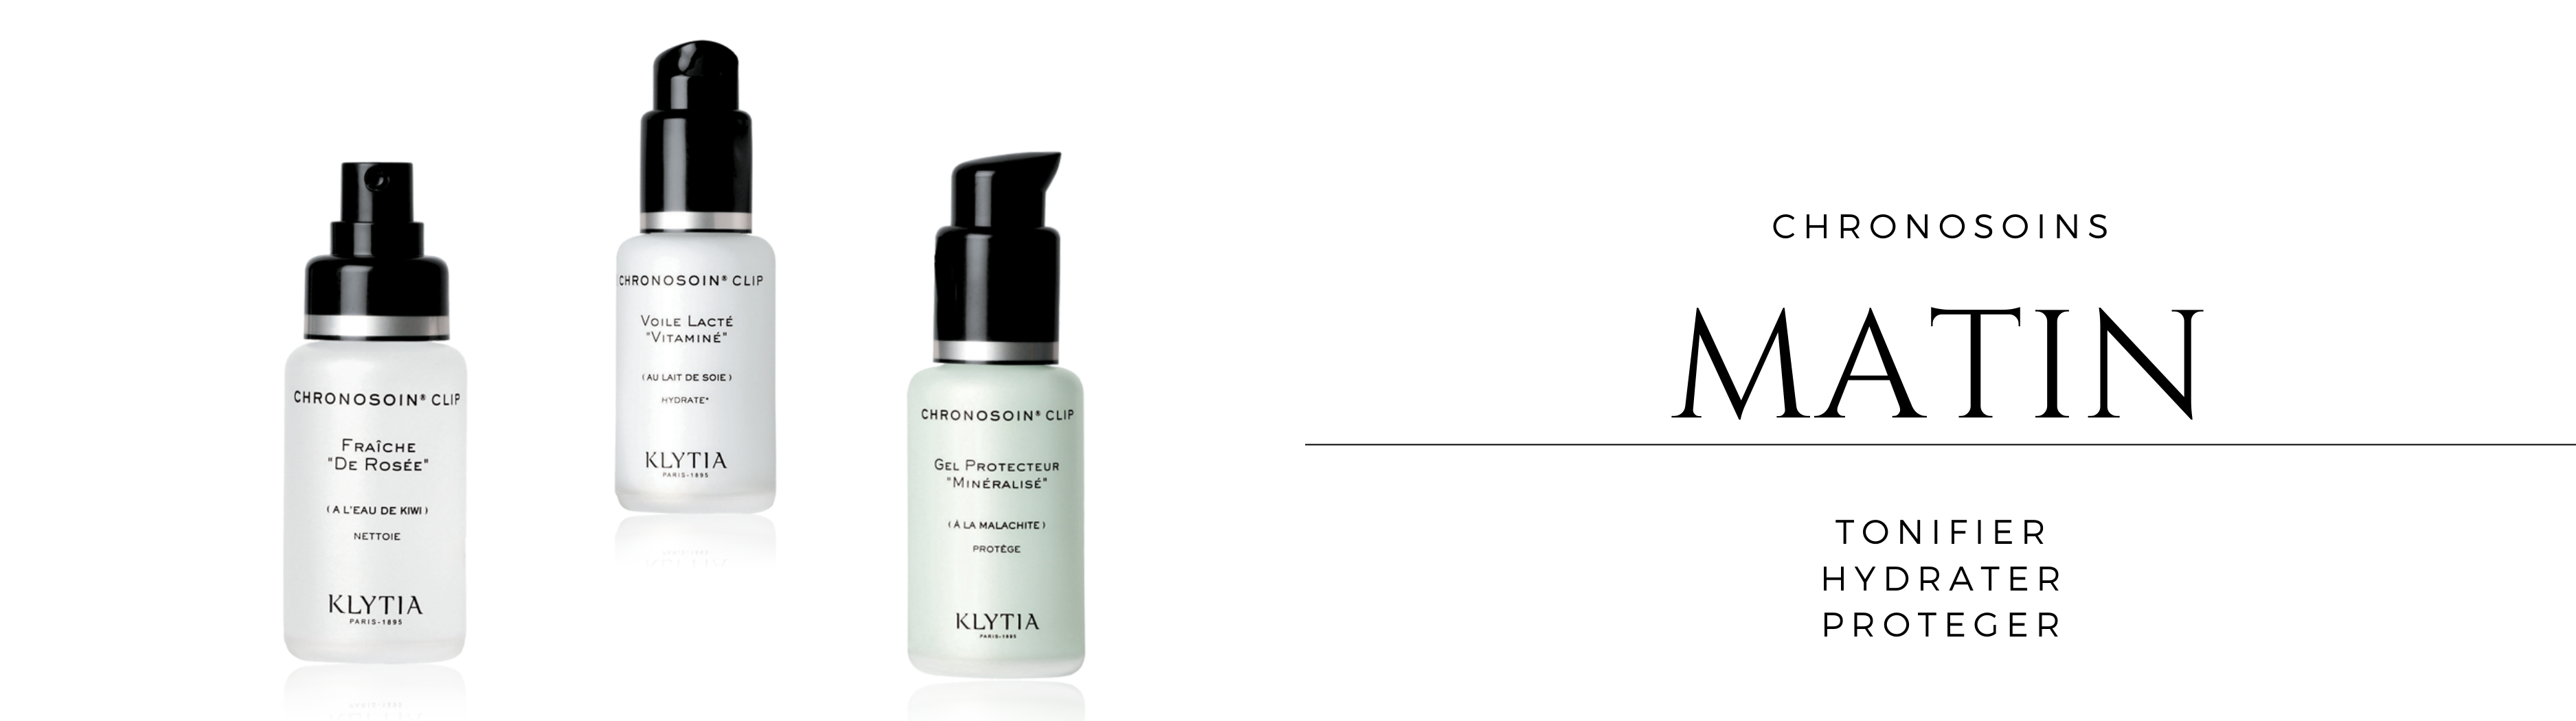 Chronosoins CLIP Klytia Paris For Needs of Skin In The Morning